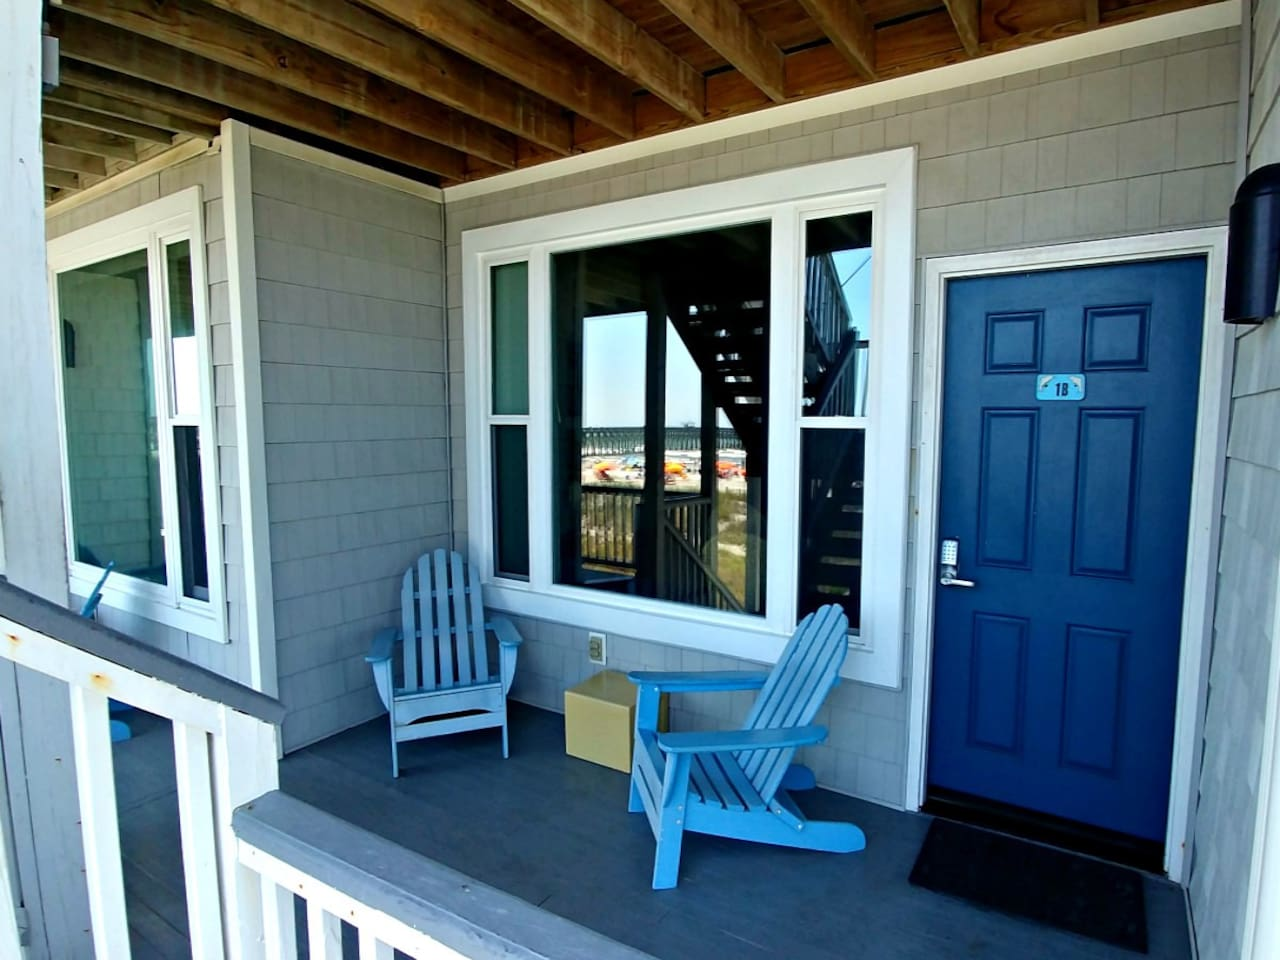 Front Porch. The stairs are located directly in front of the porch